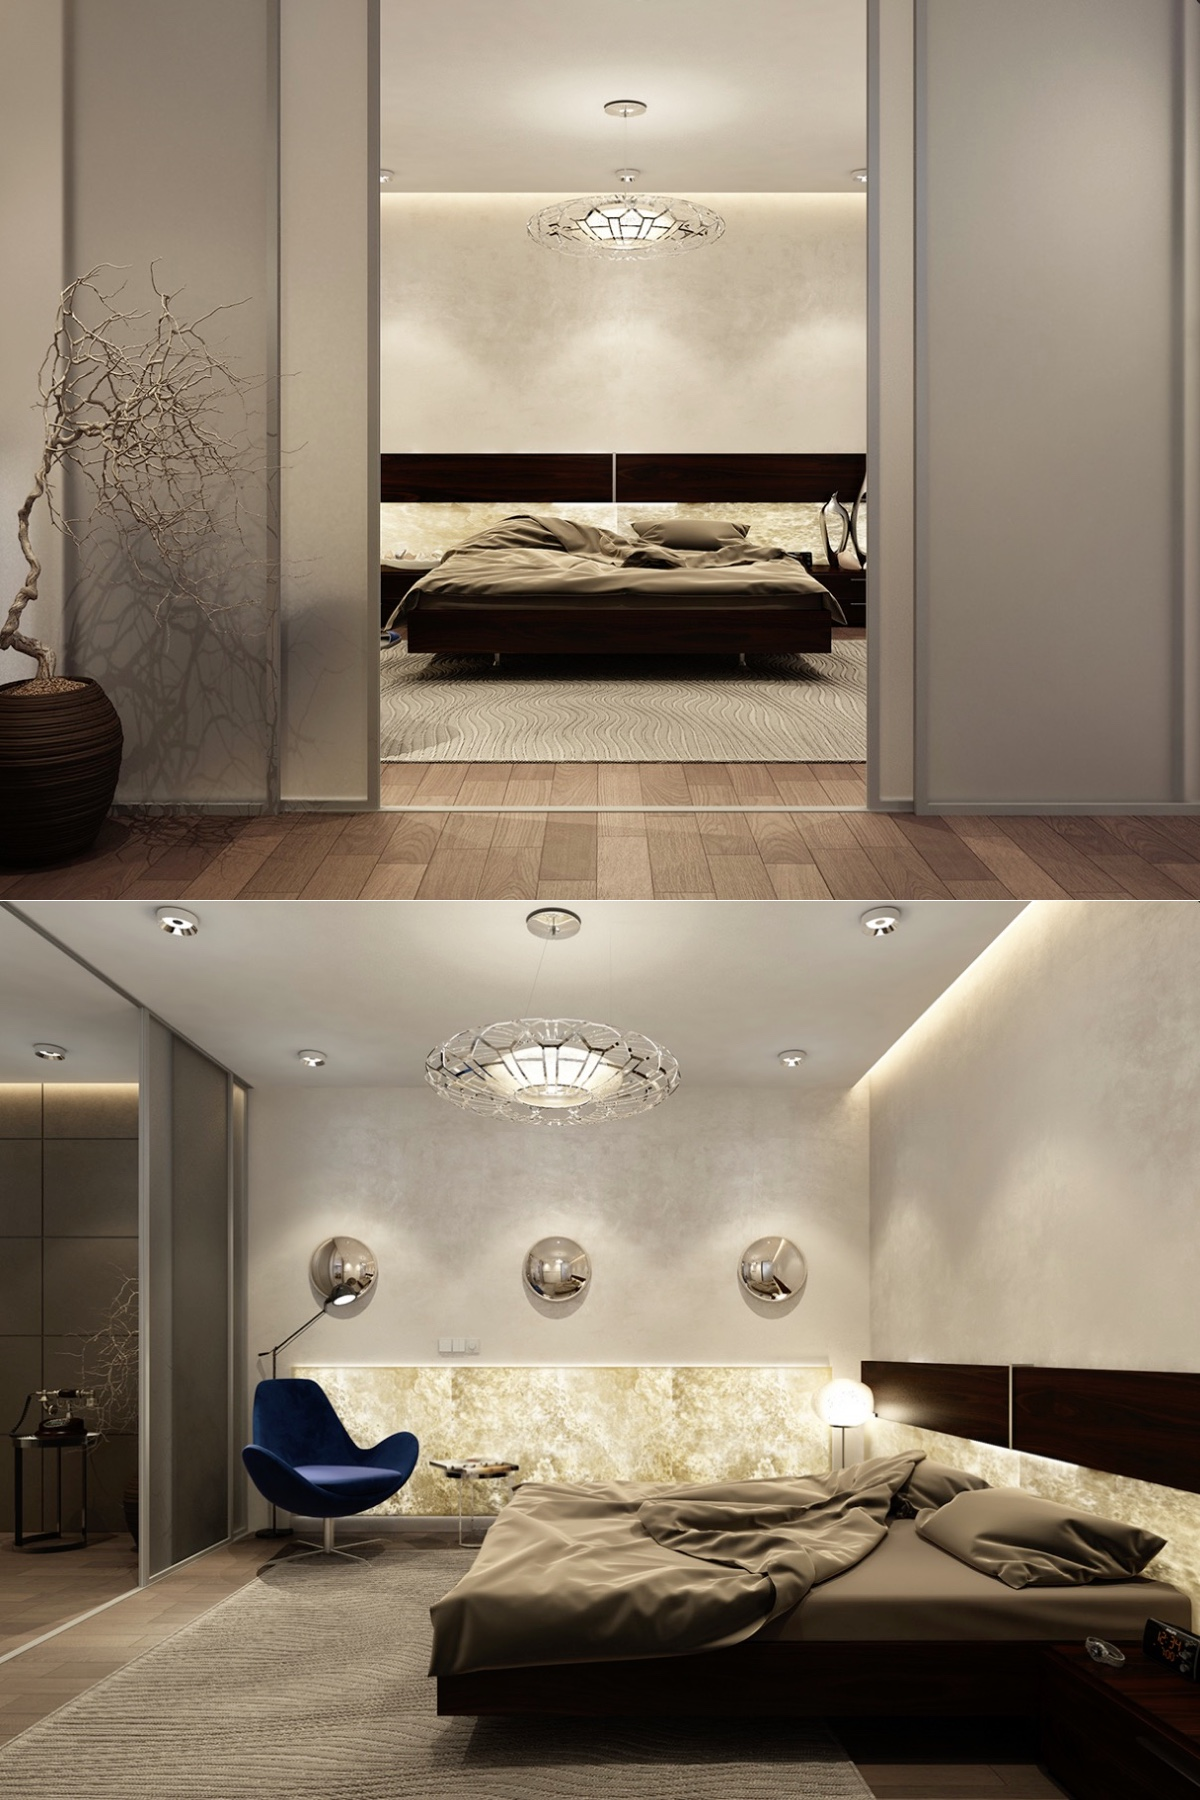 21 cool bedrooms for clean and simple design inspiration home office room calmly